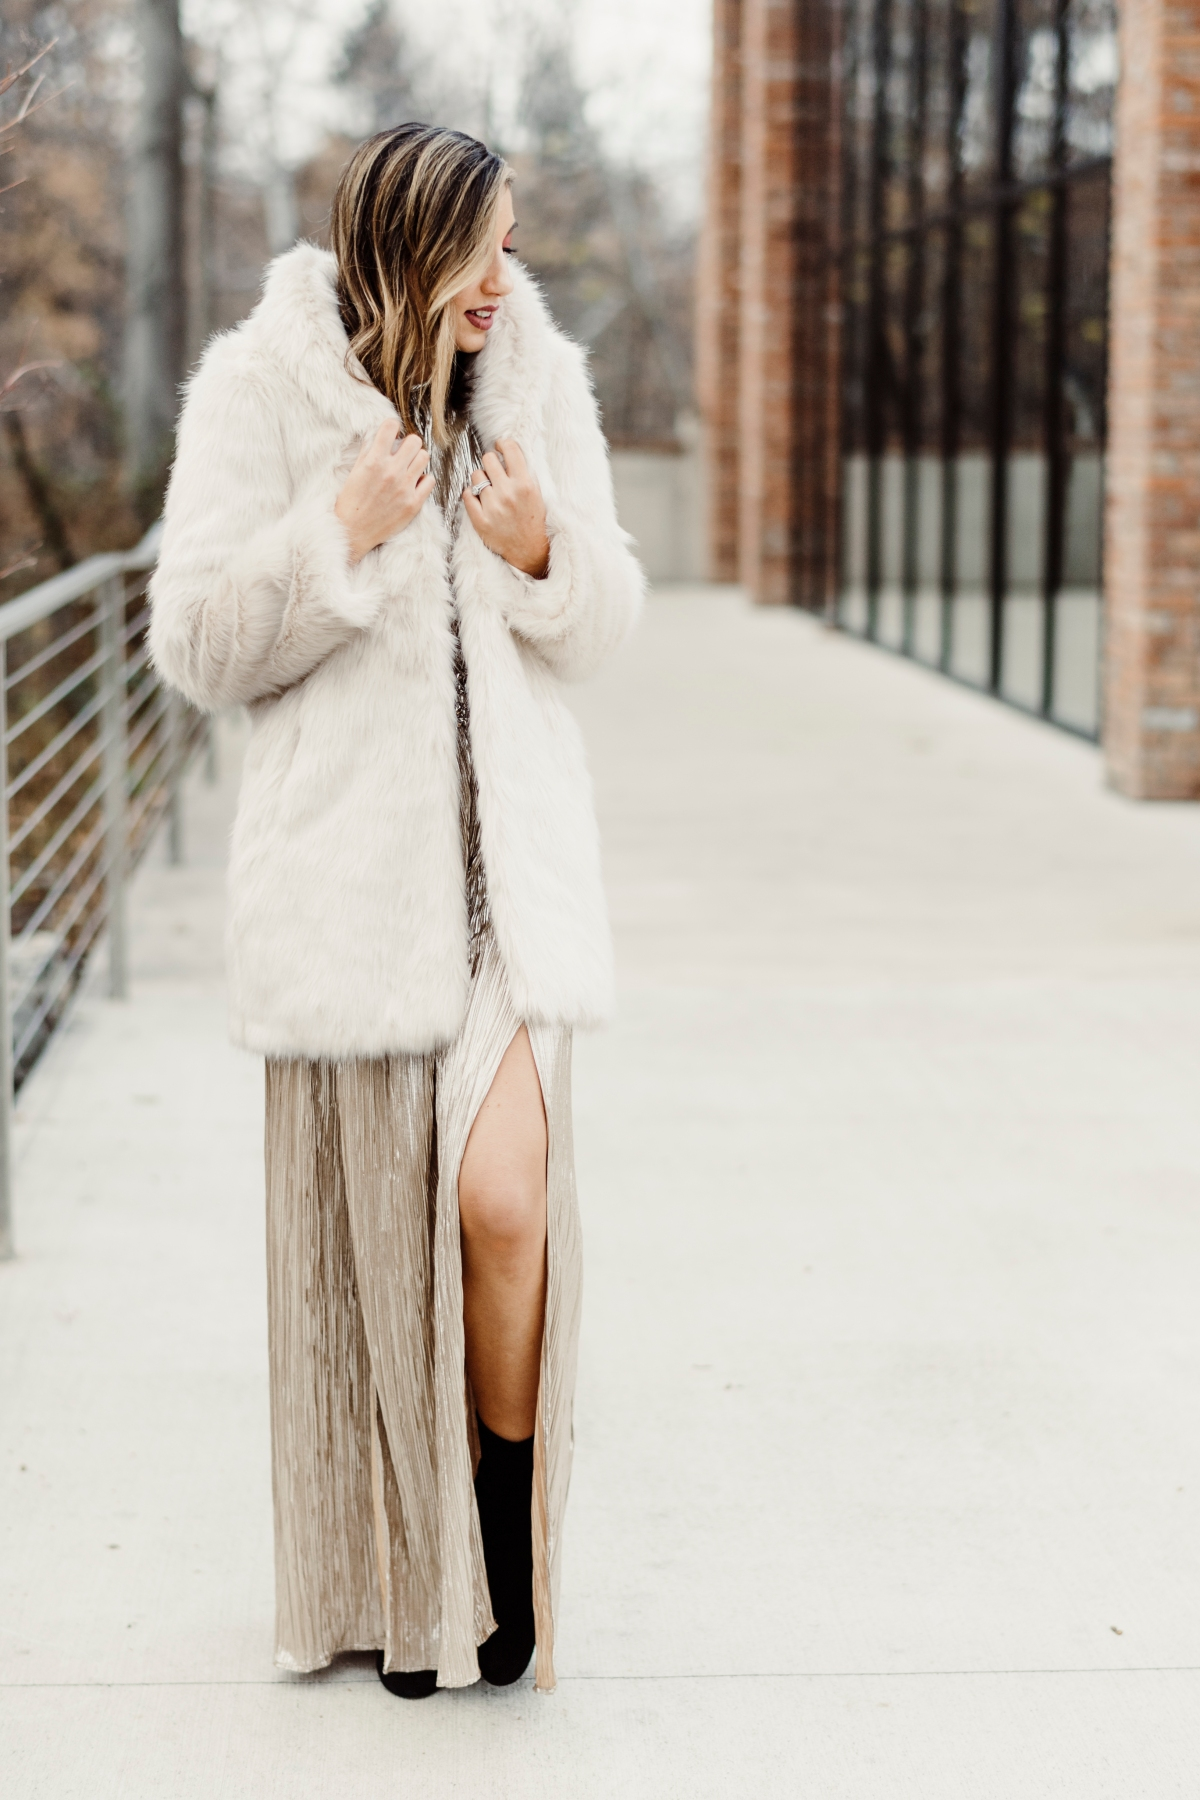 gala-affordable-glam-faux-fur-edgy-city-street-style-fashion-lux-luxury-budget-friendly-NYC-NYE-new-years-eve